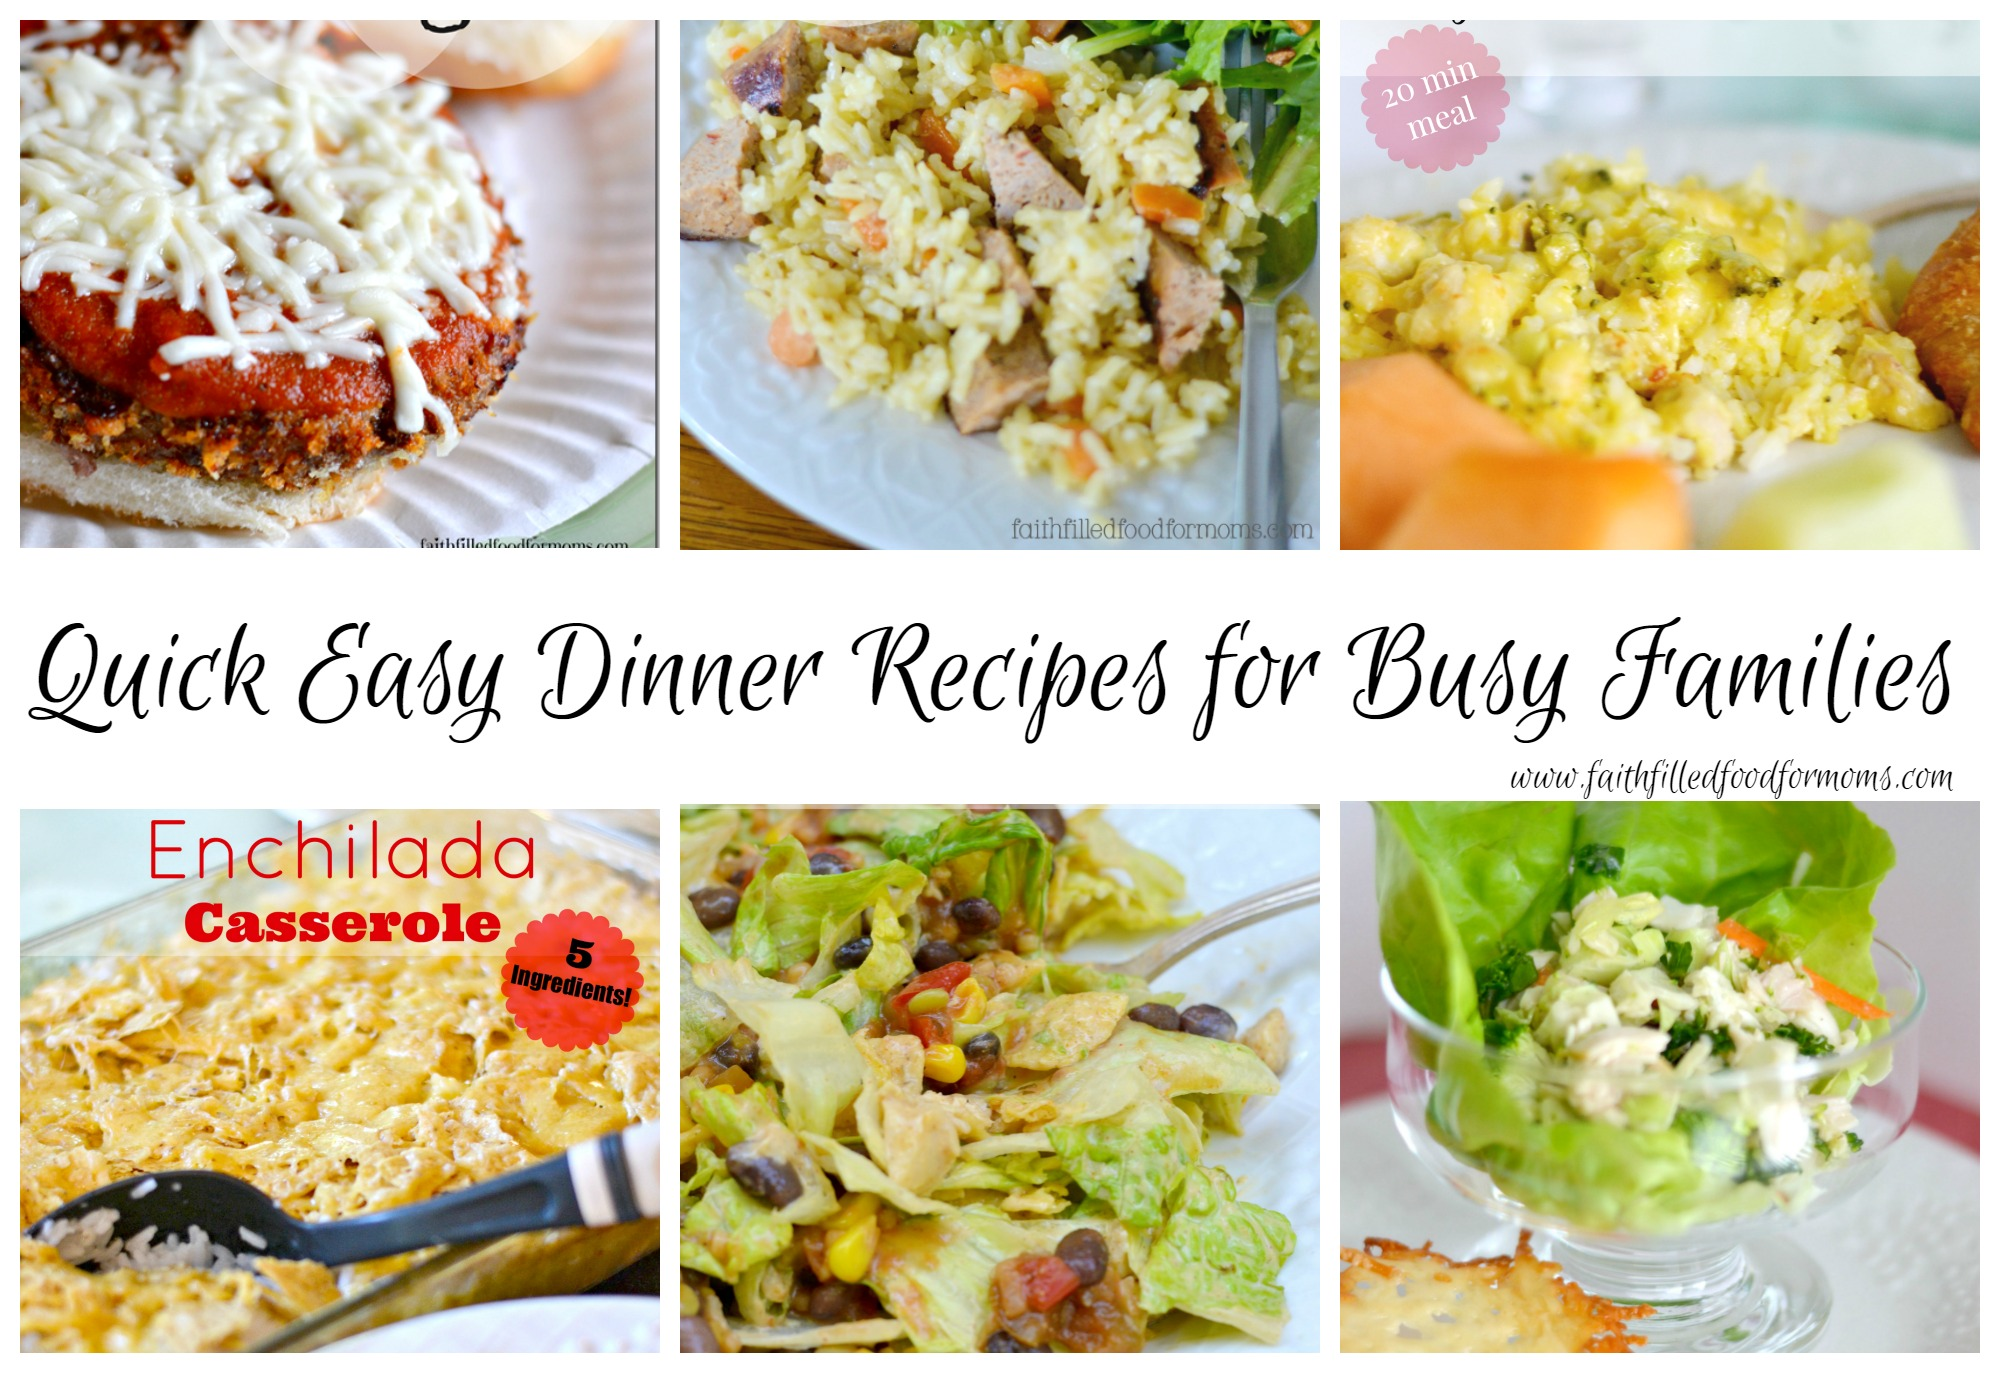 Easy dinner recipes for a family